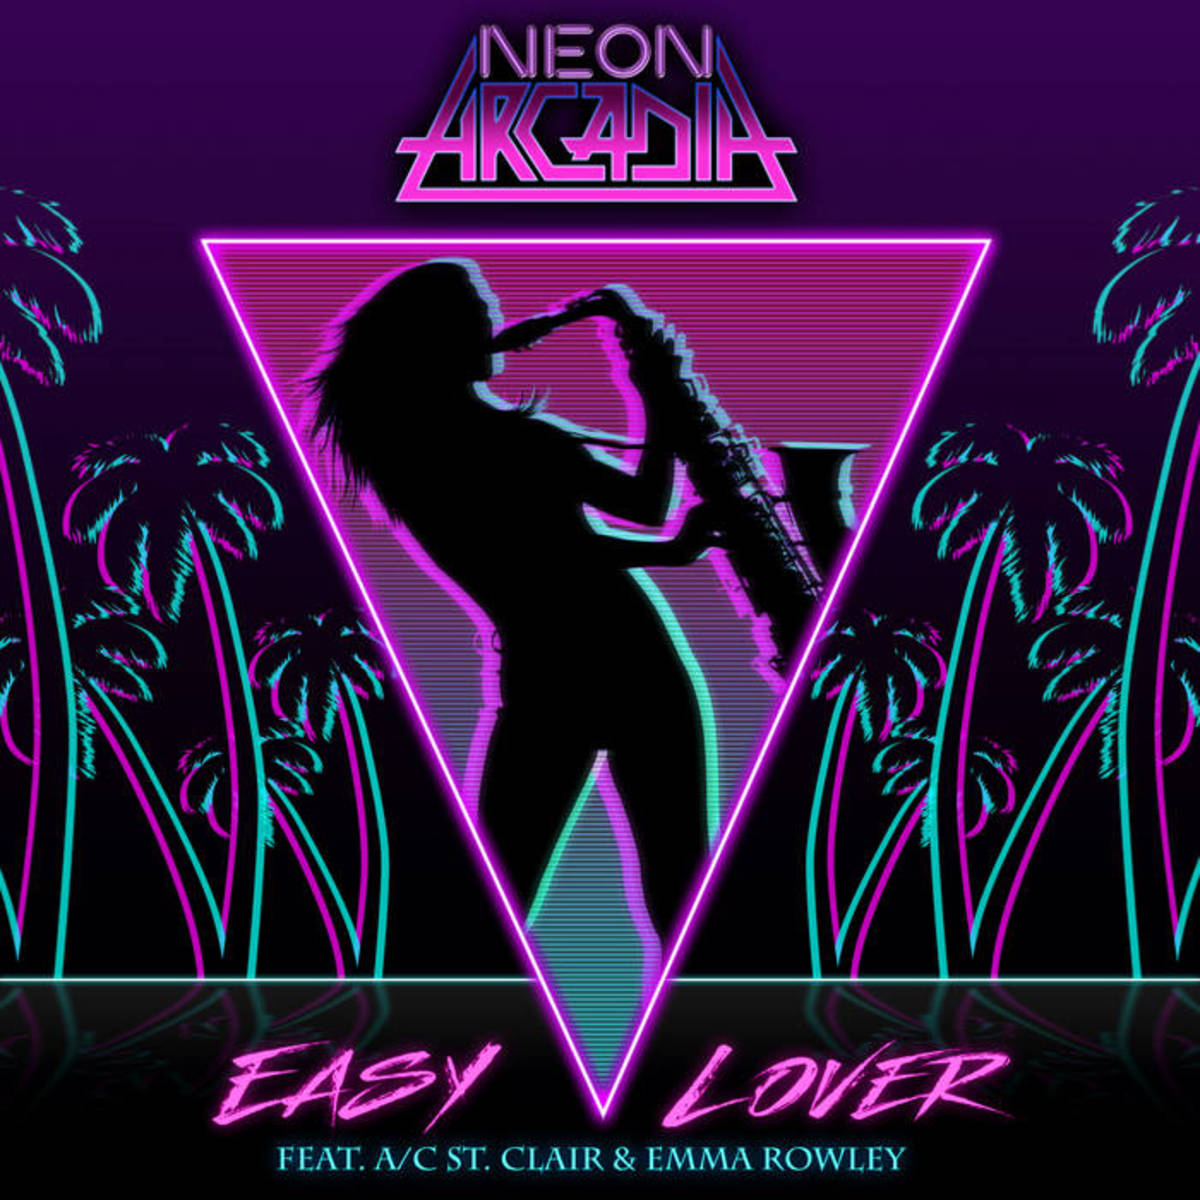 """Artwork for """"Easy Lover,"""" by Neon Arcadia"""